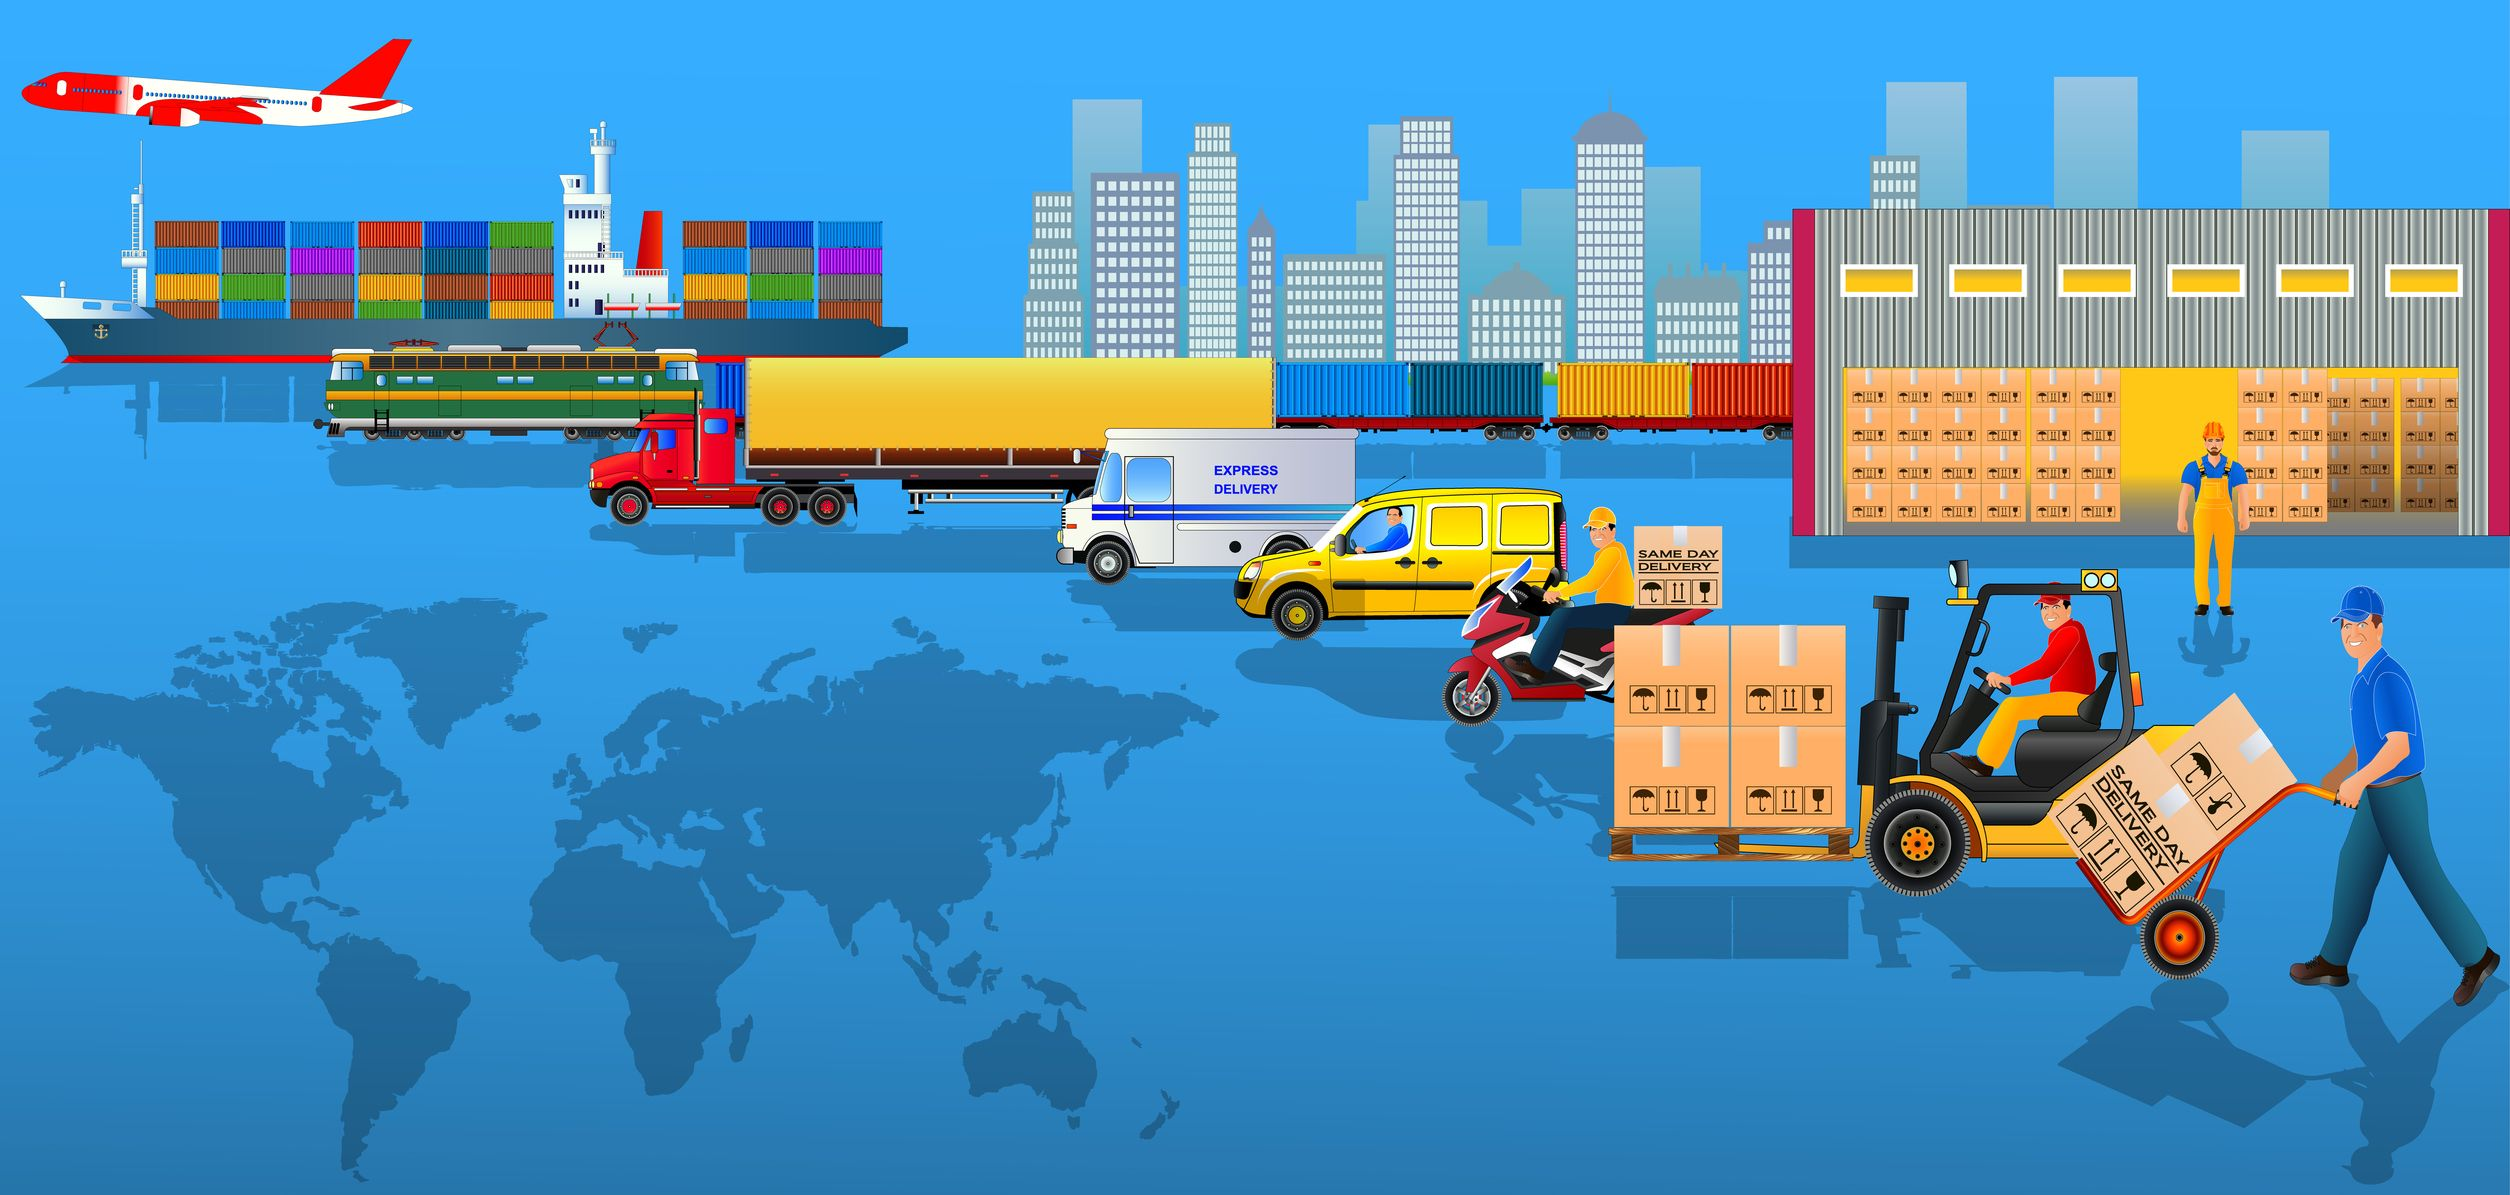 List of Gains by Opting for Logistics and Supply Chain Management